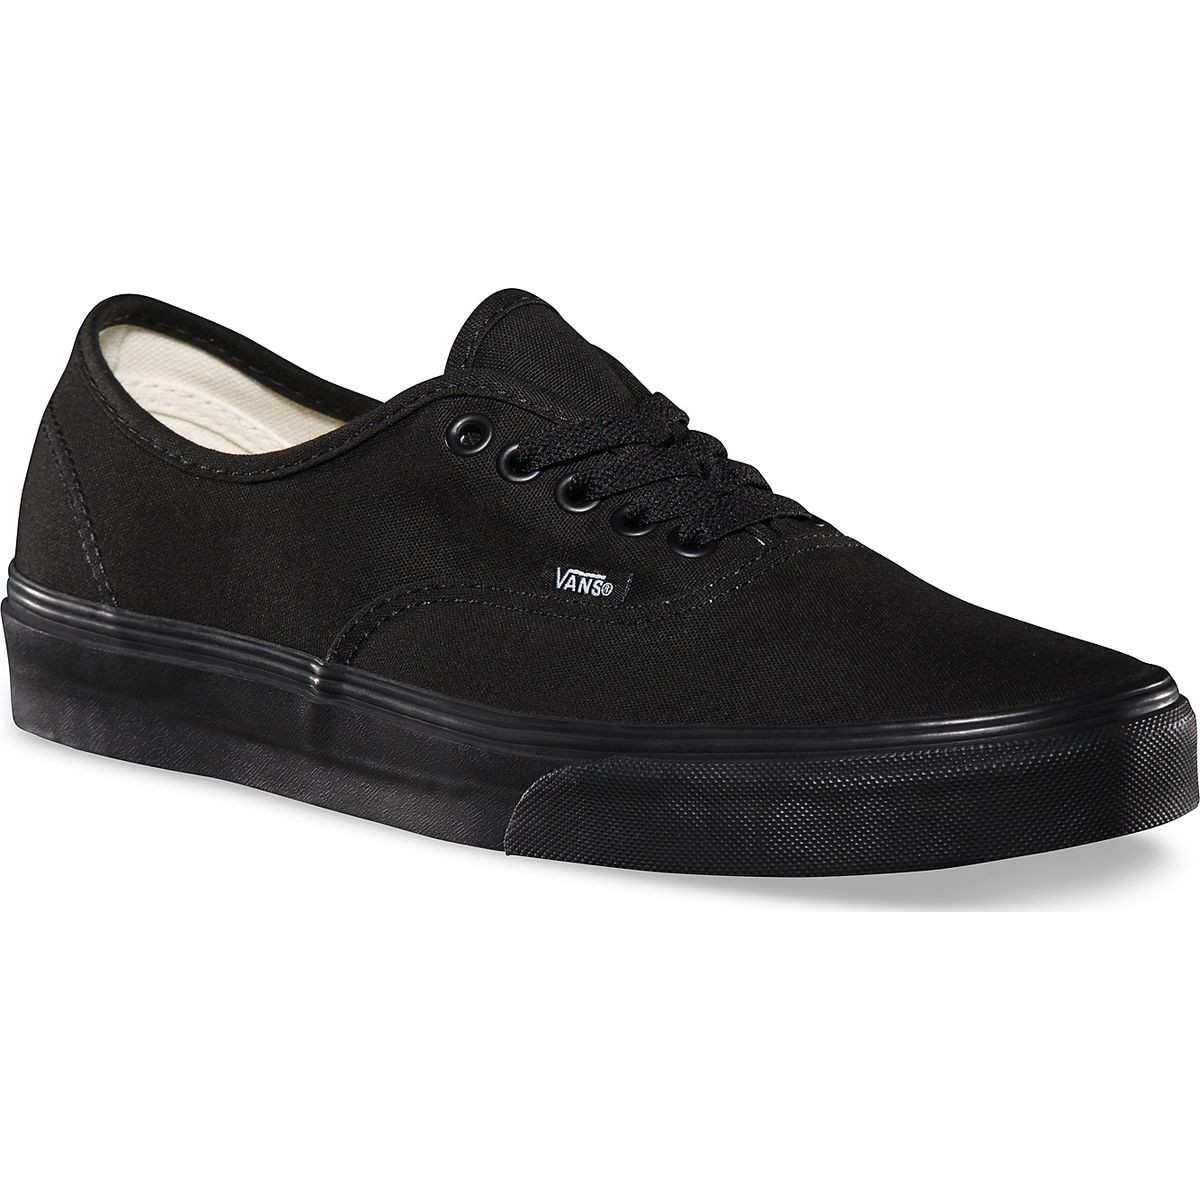 Vans Original Authentic Shoes - Black / Black